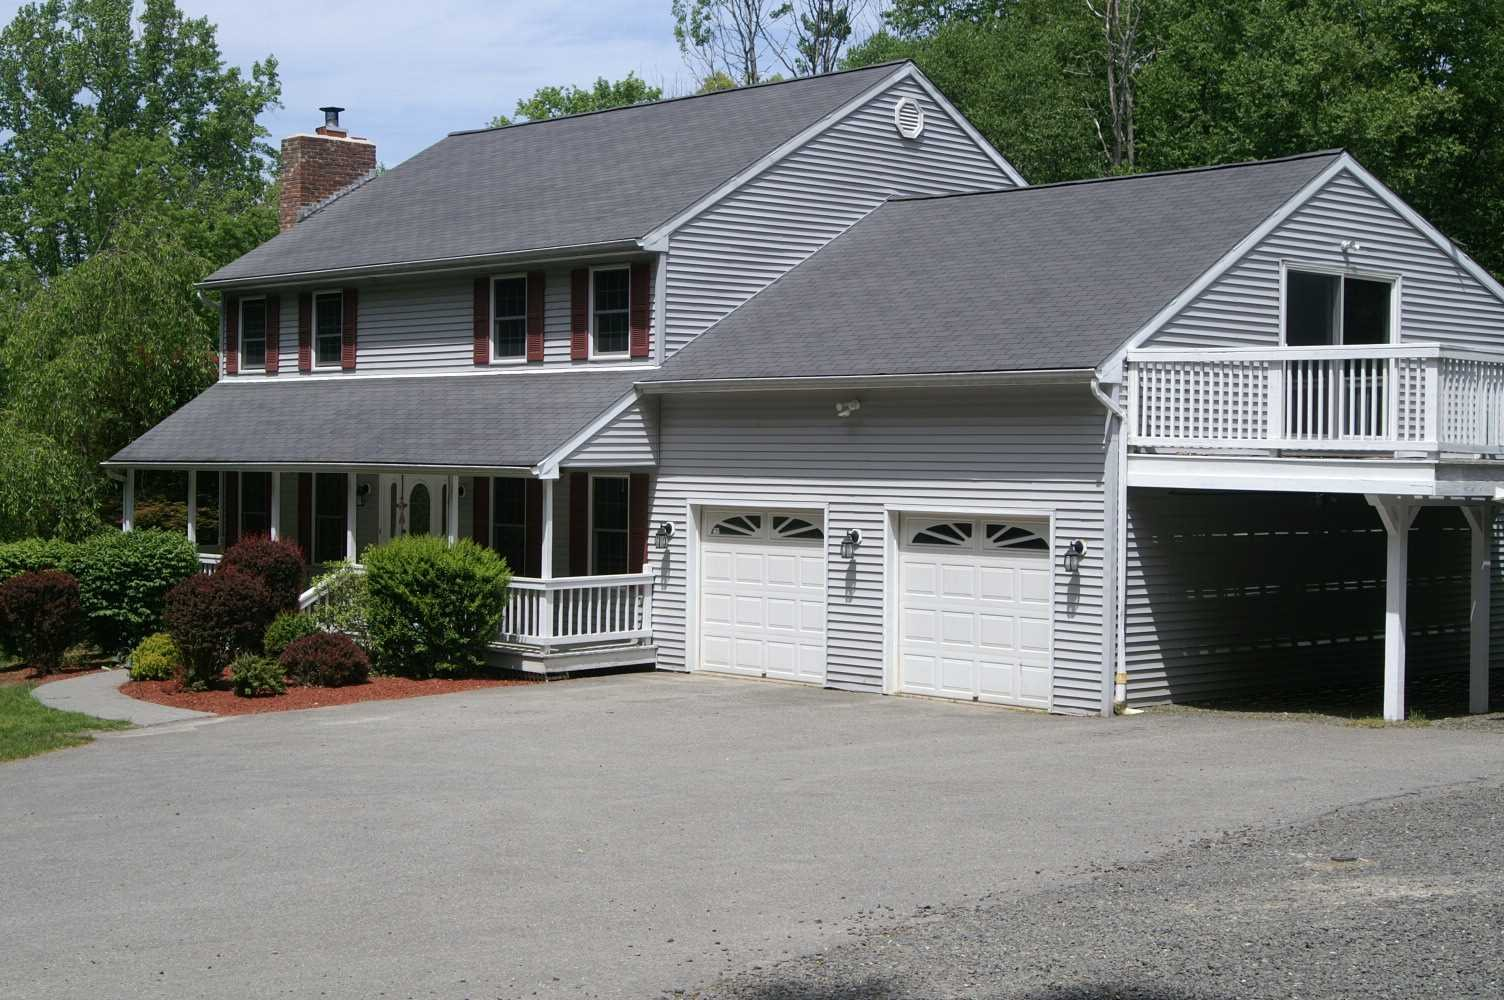 Single Family Home for Sale at 14 LILY POND Trail 14 LILY POND Trail New Milford, Connecticut 06776 United States